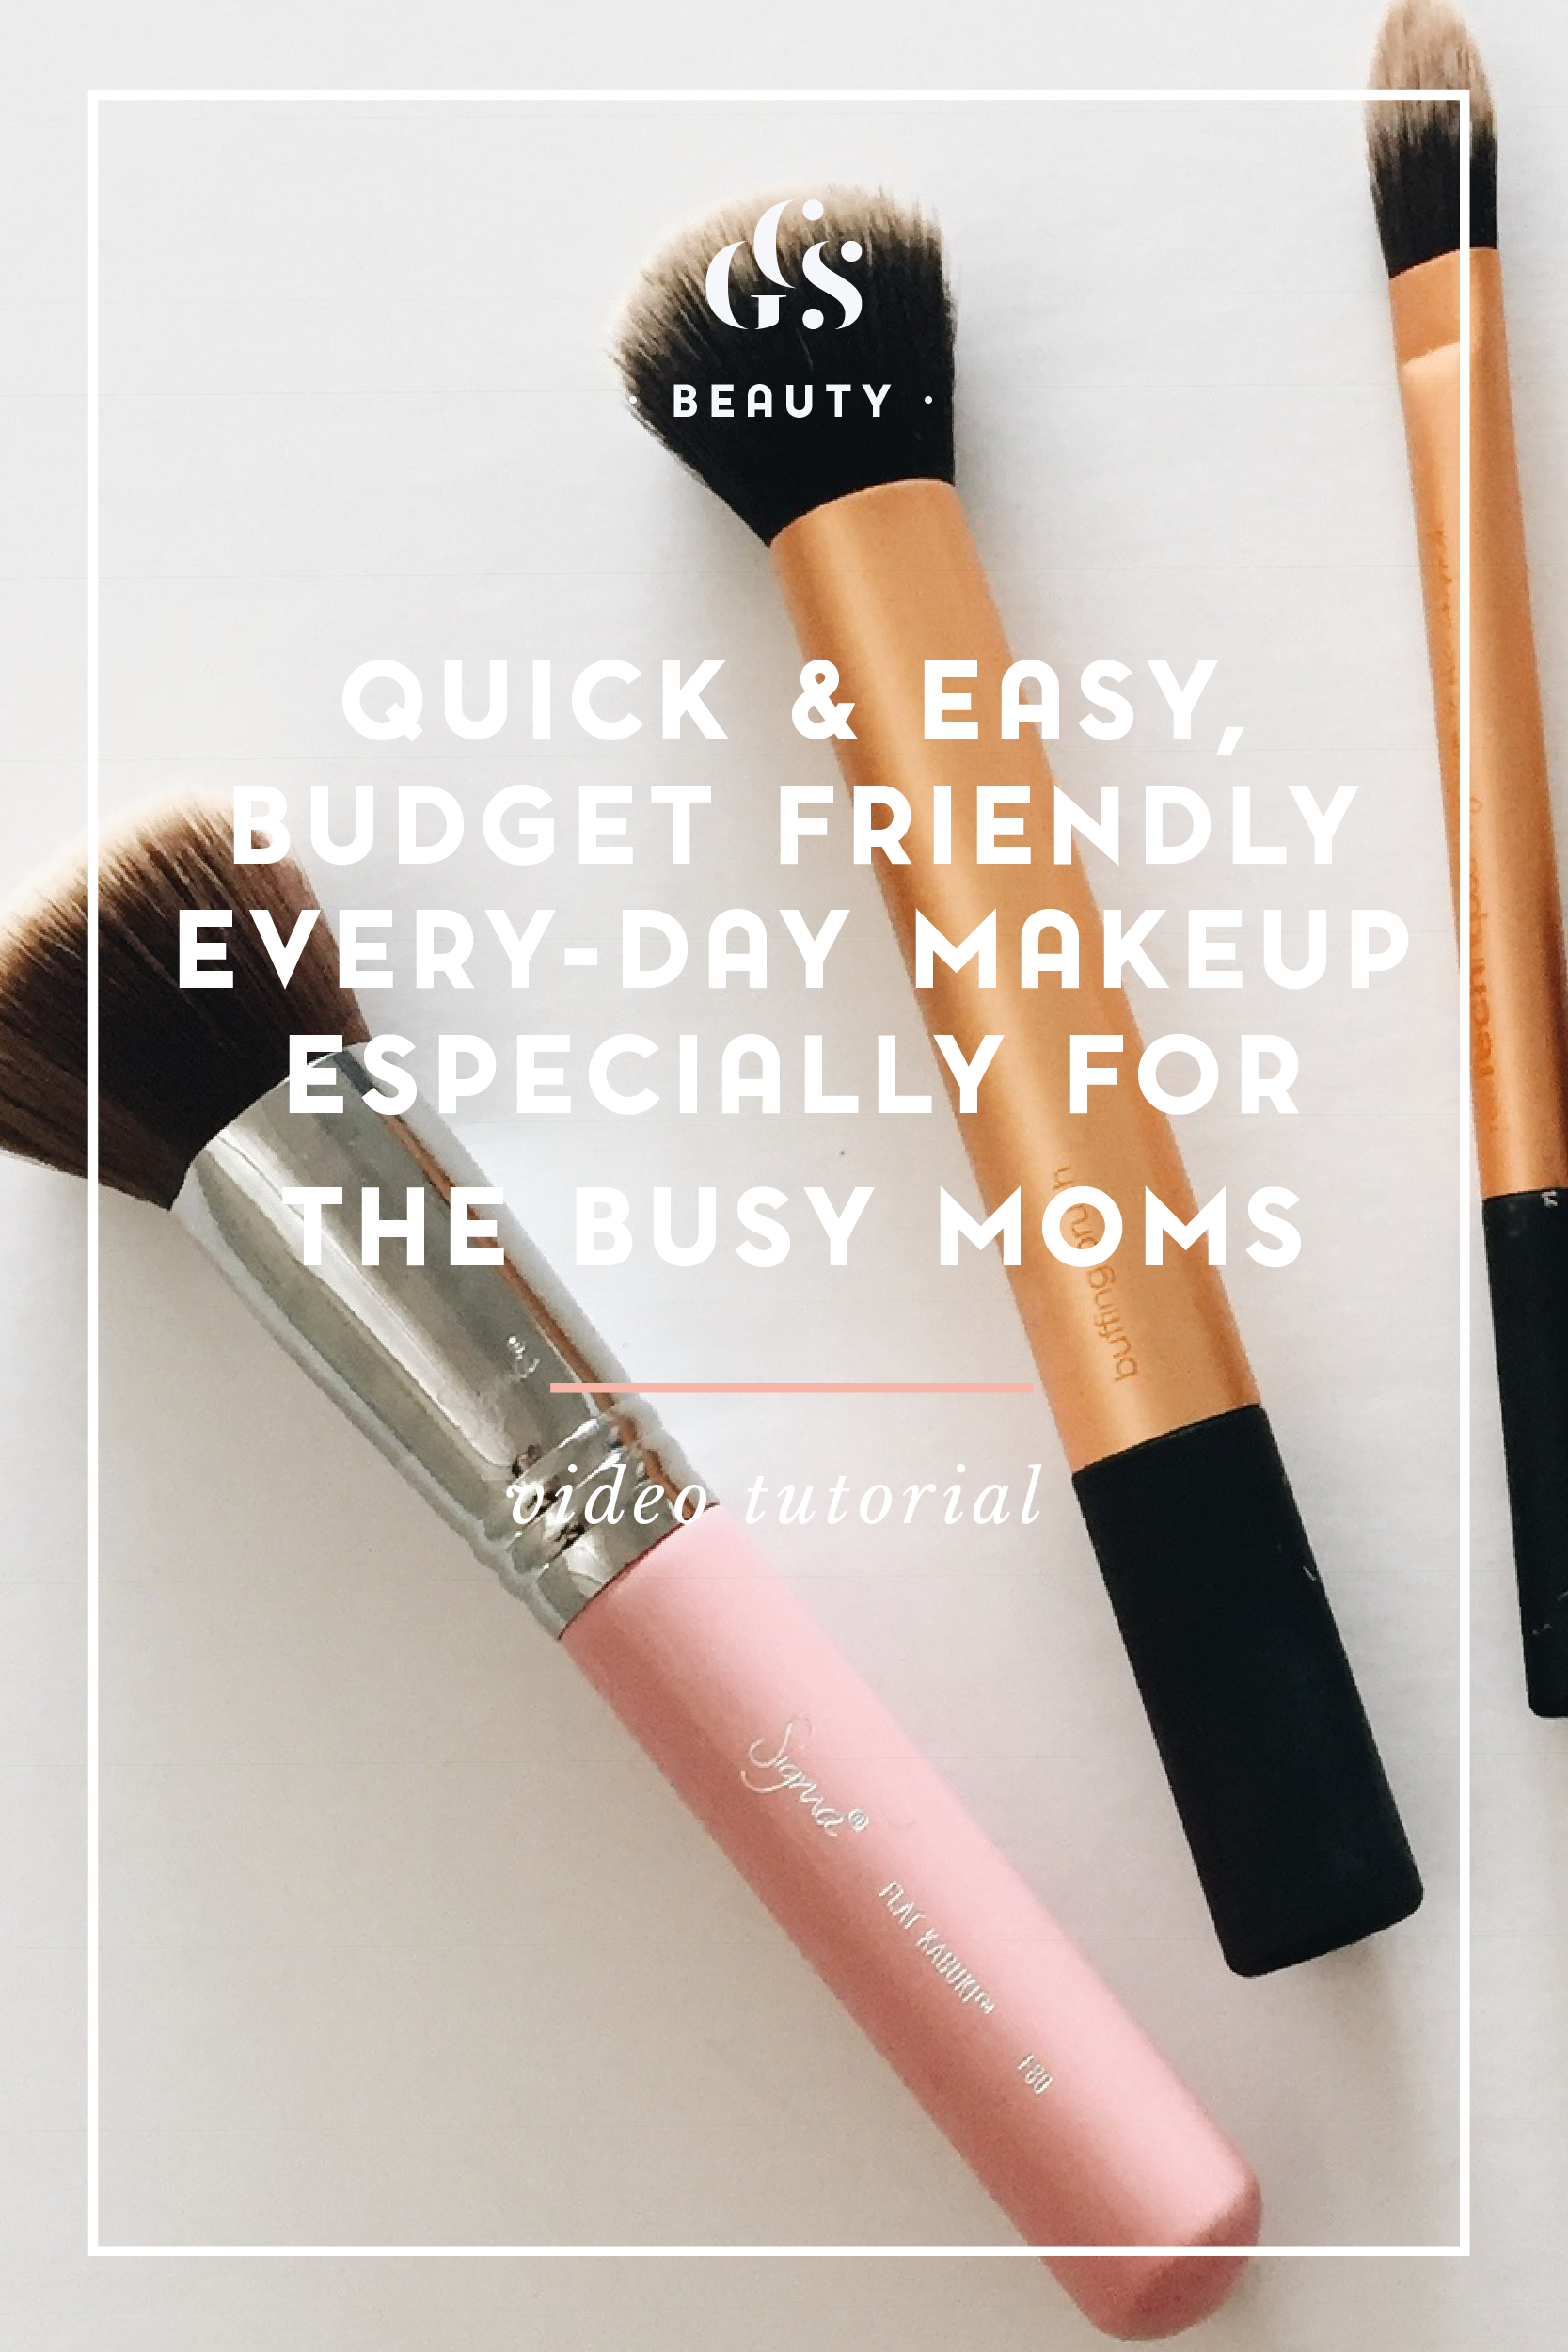 Quick & Easy, Budget Friendly Everyday Makeup Look Tutorial Especially for the Moms Video Tutorial CityGirlSearching-01.png